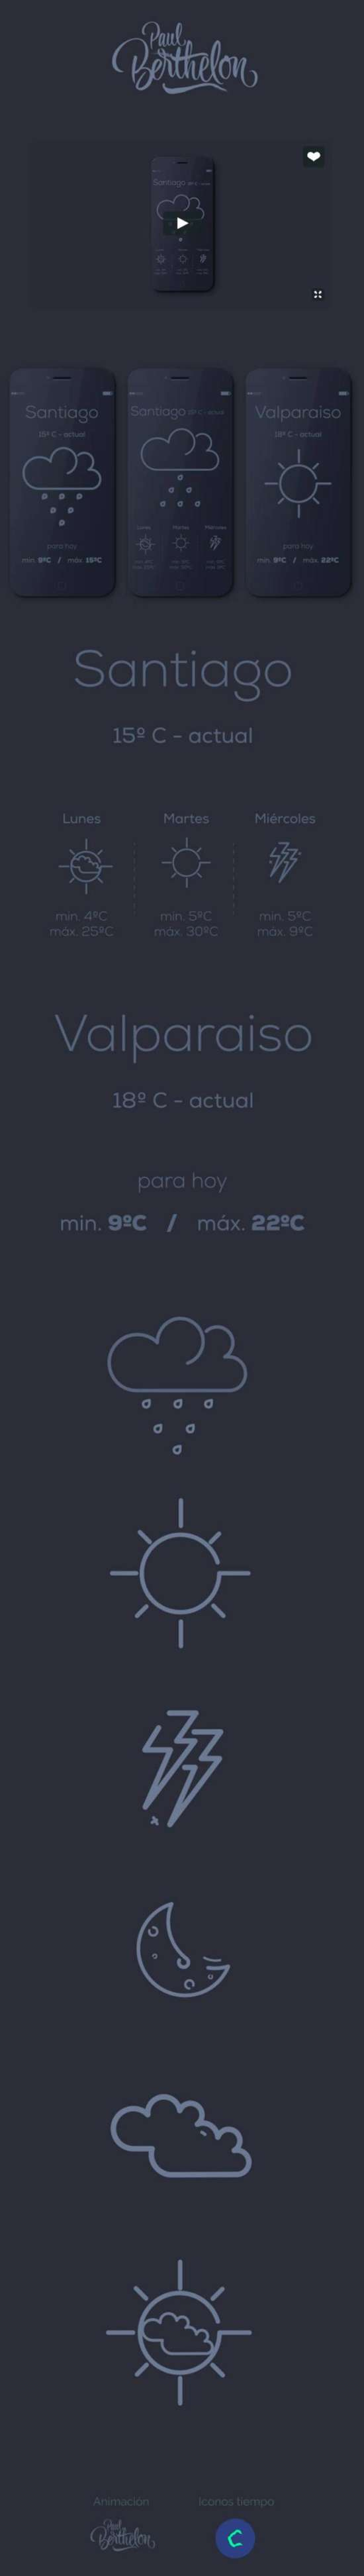 weather_app_by_paul_screenshot